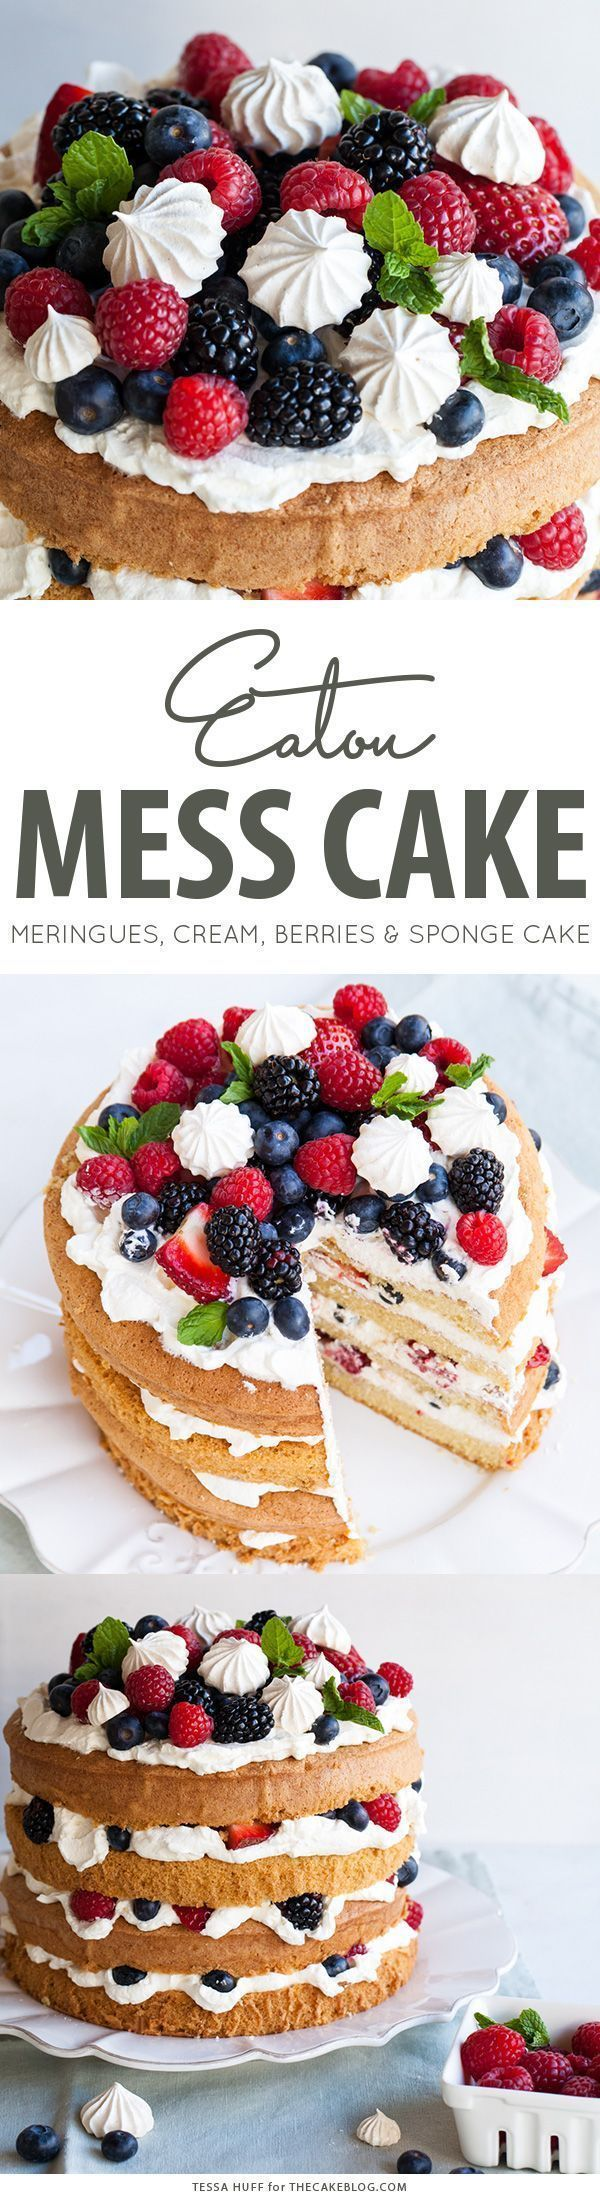 Eaton Mess Cake with crisp meringues, sweetened cream and fresh berries. A refreshing cake for spring and summer celebrations.   By Tessa Huff for TheCakeBlog.com